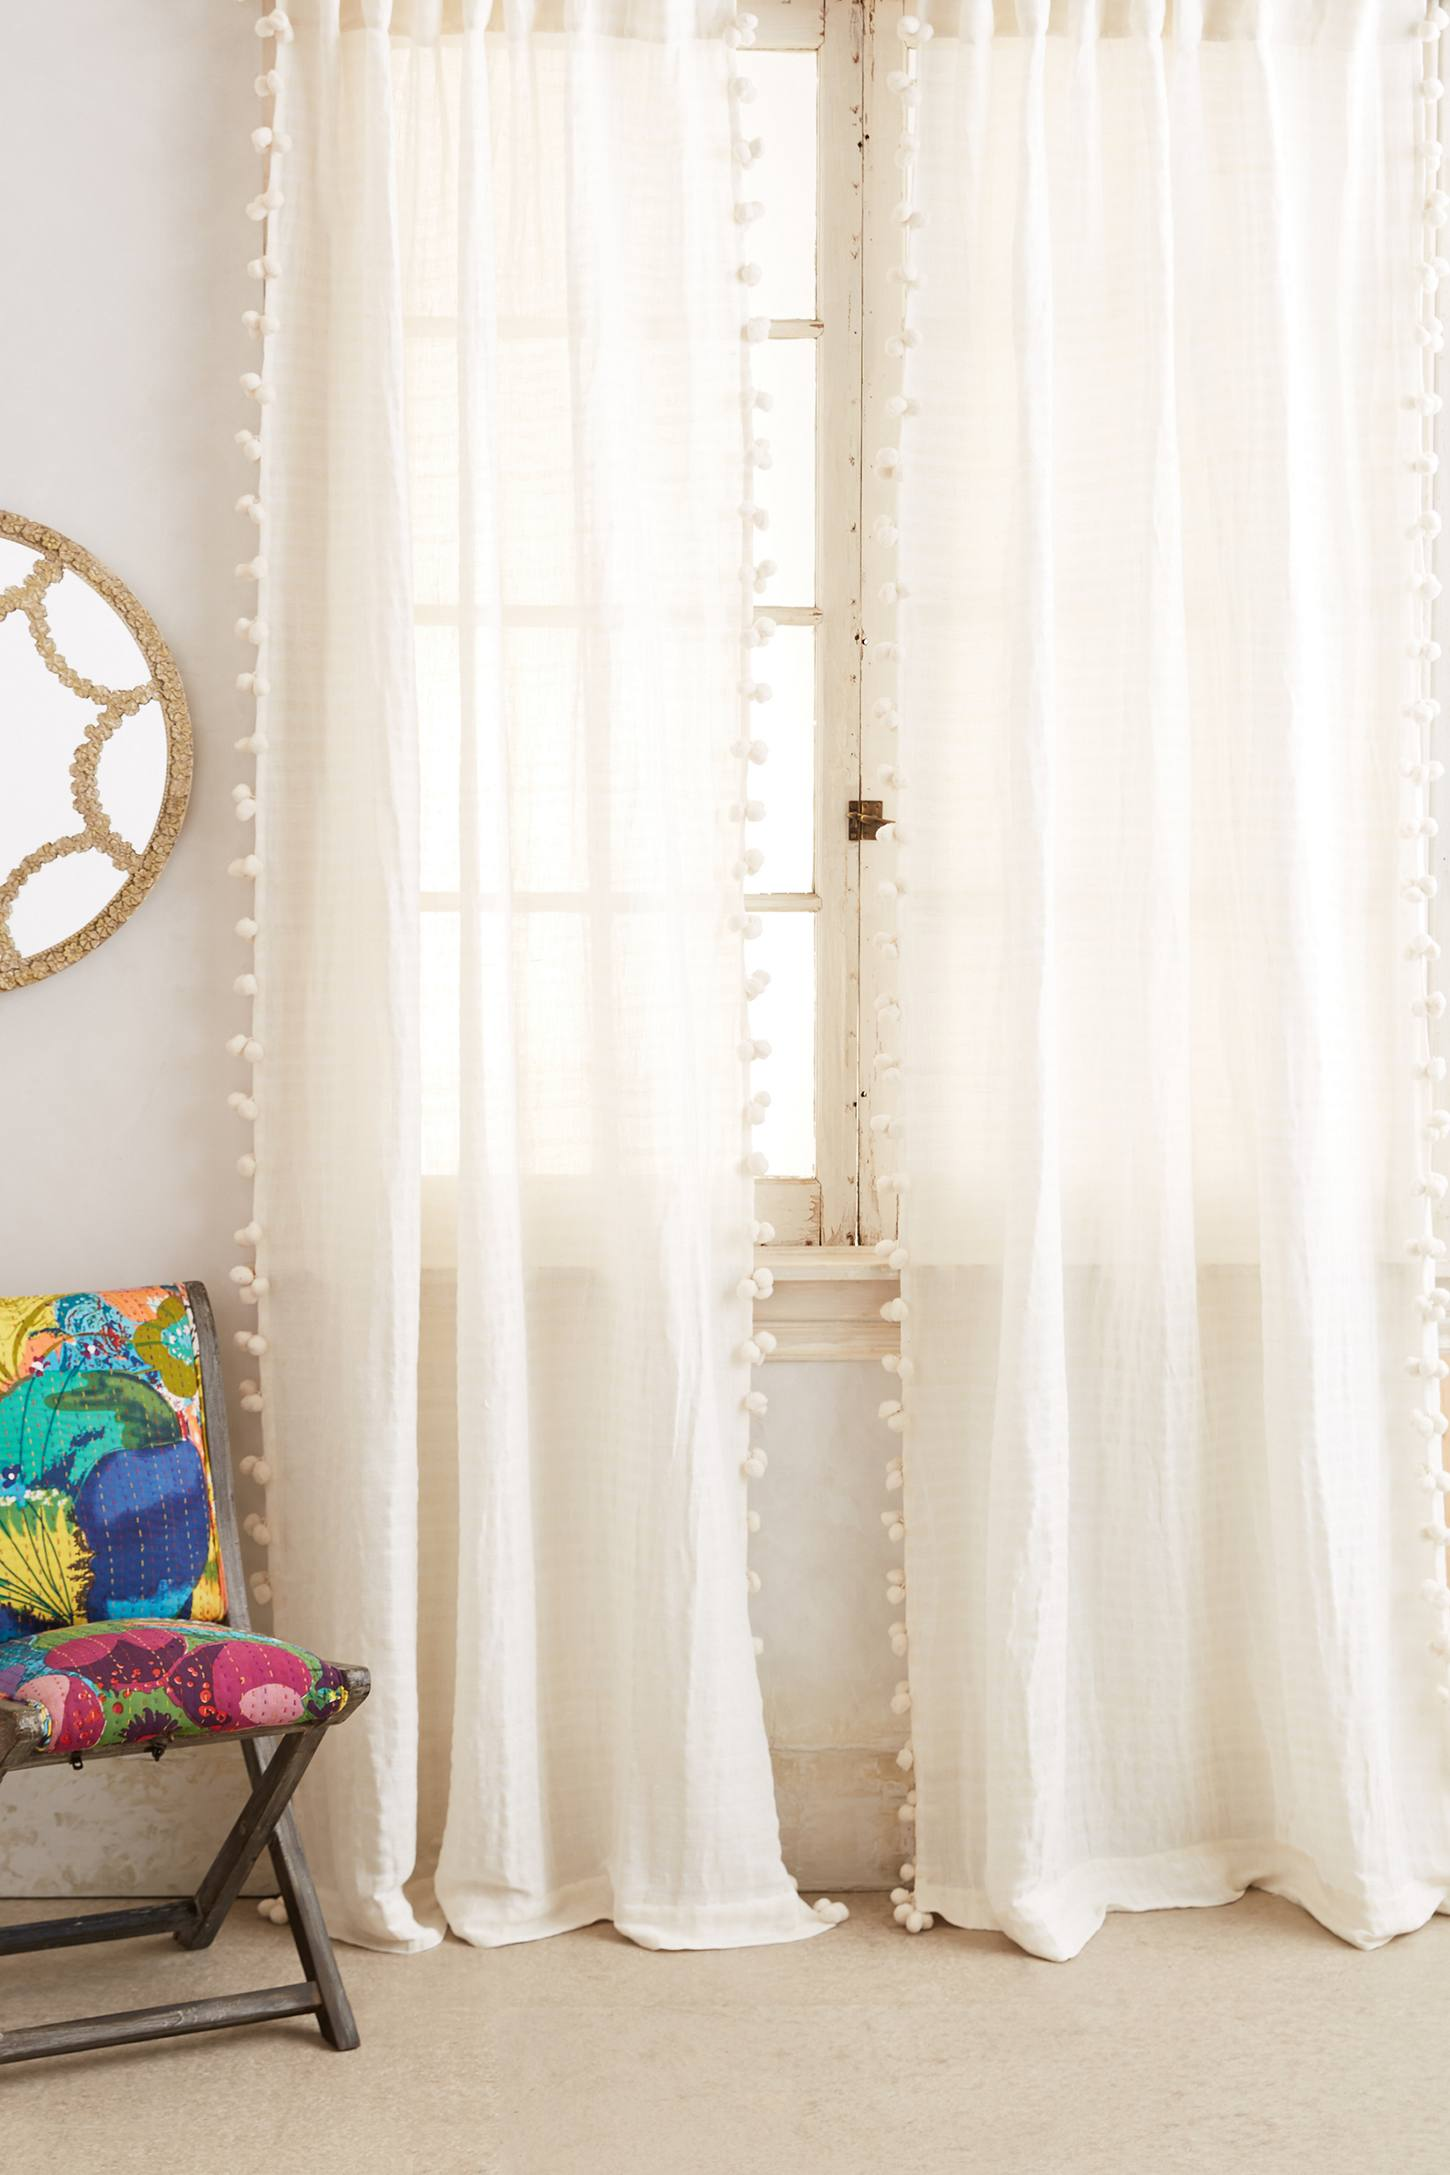 anthropologie.com - At $100 a panel, these can get a little pricey if you're looking to cover more than one window. My DIY version cost me less than $50 for two panels and a curtain rod!